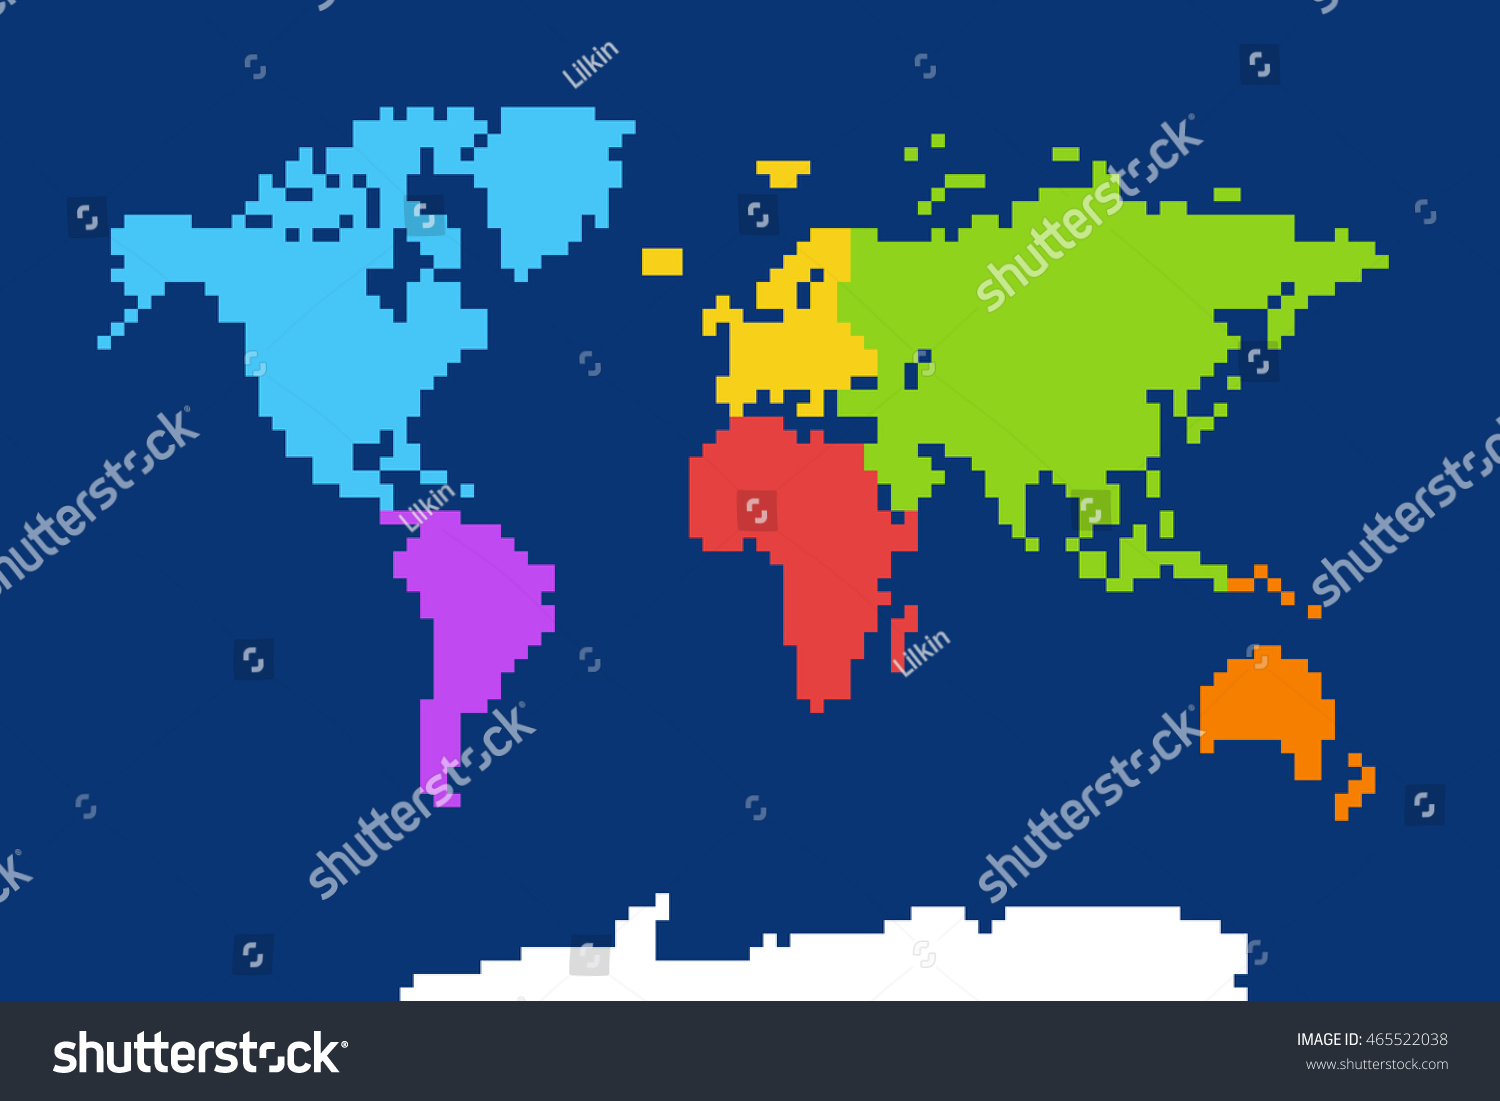 show me a map of africa with Colored World Map Pixel Art Vector 465522038 on Mini Guide El Jadida Morocco besides Maps together with 2007 Toyota Siyaya ID15UZf5 in addition Colored World Map Pixel Art Vector 465522038 as well Perissa Hotels 1390.